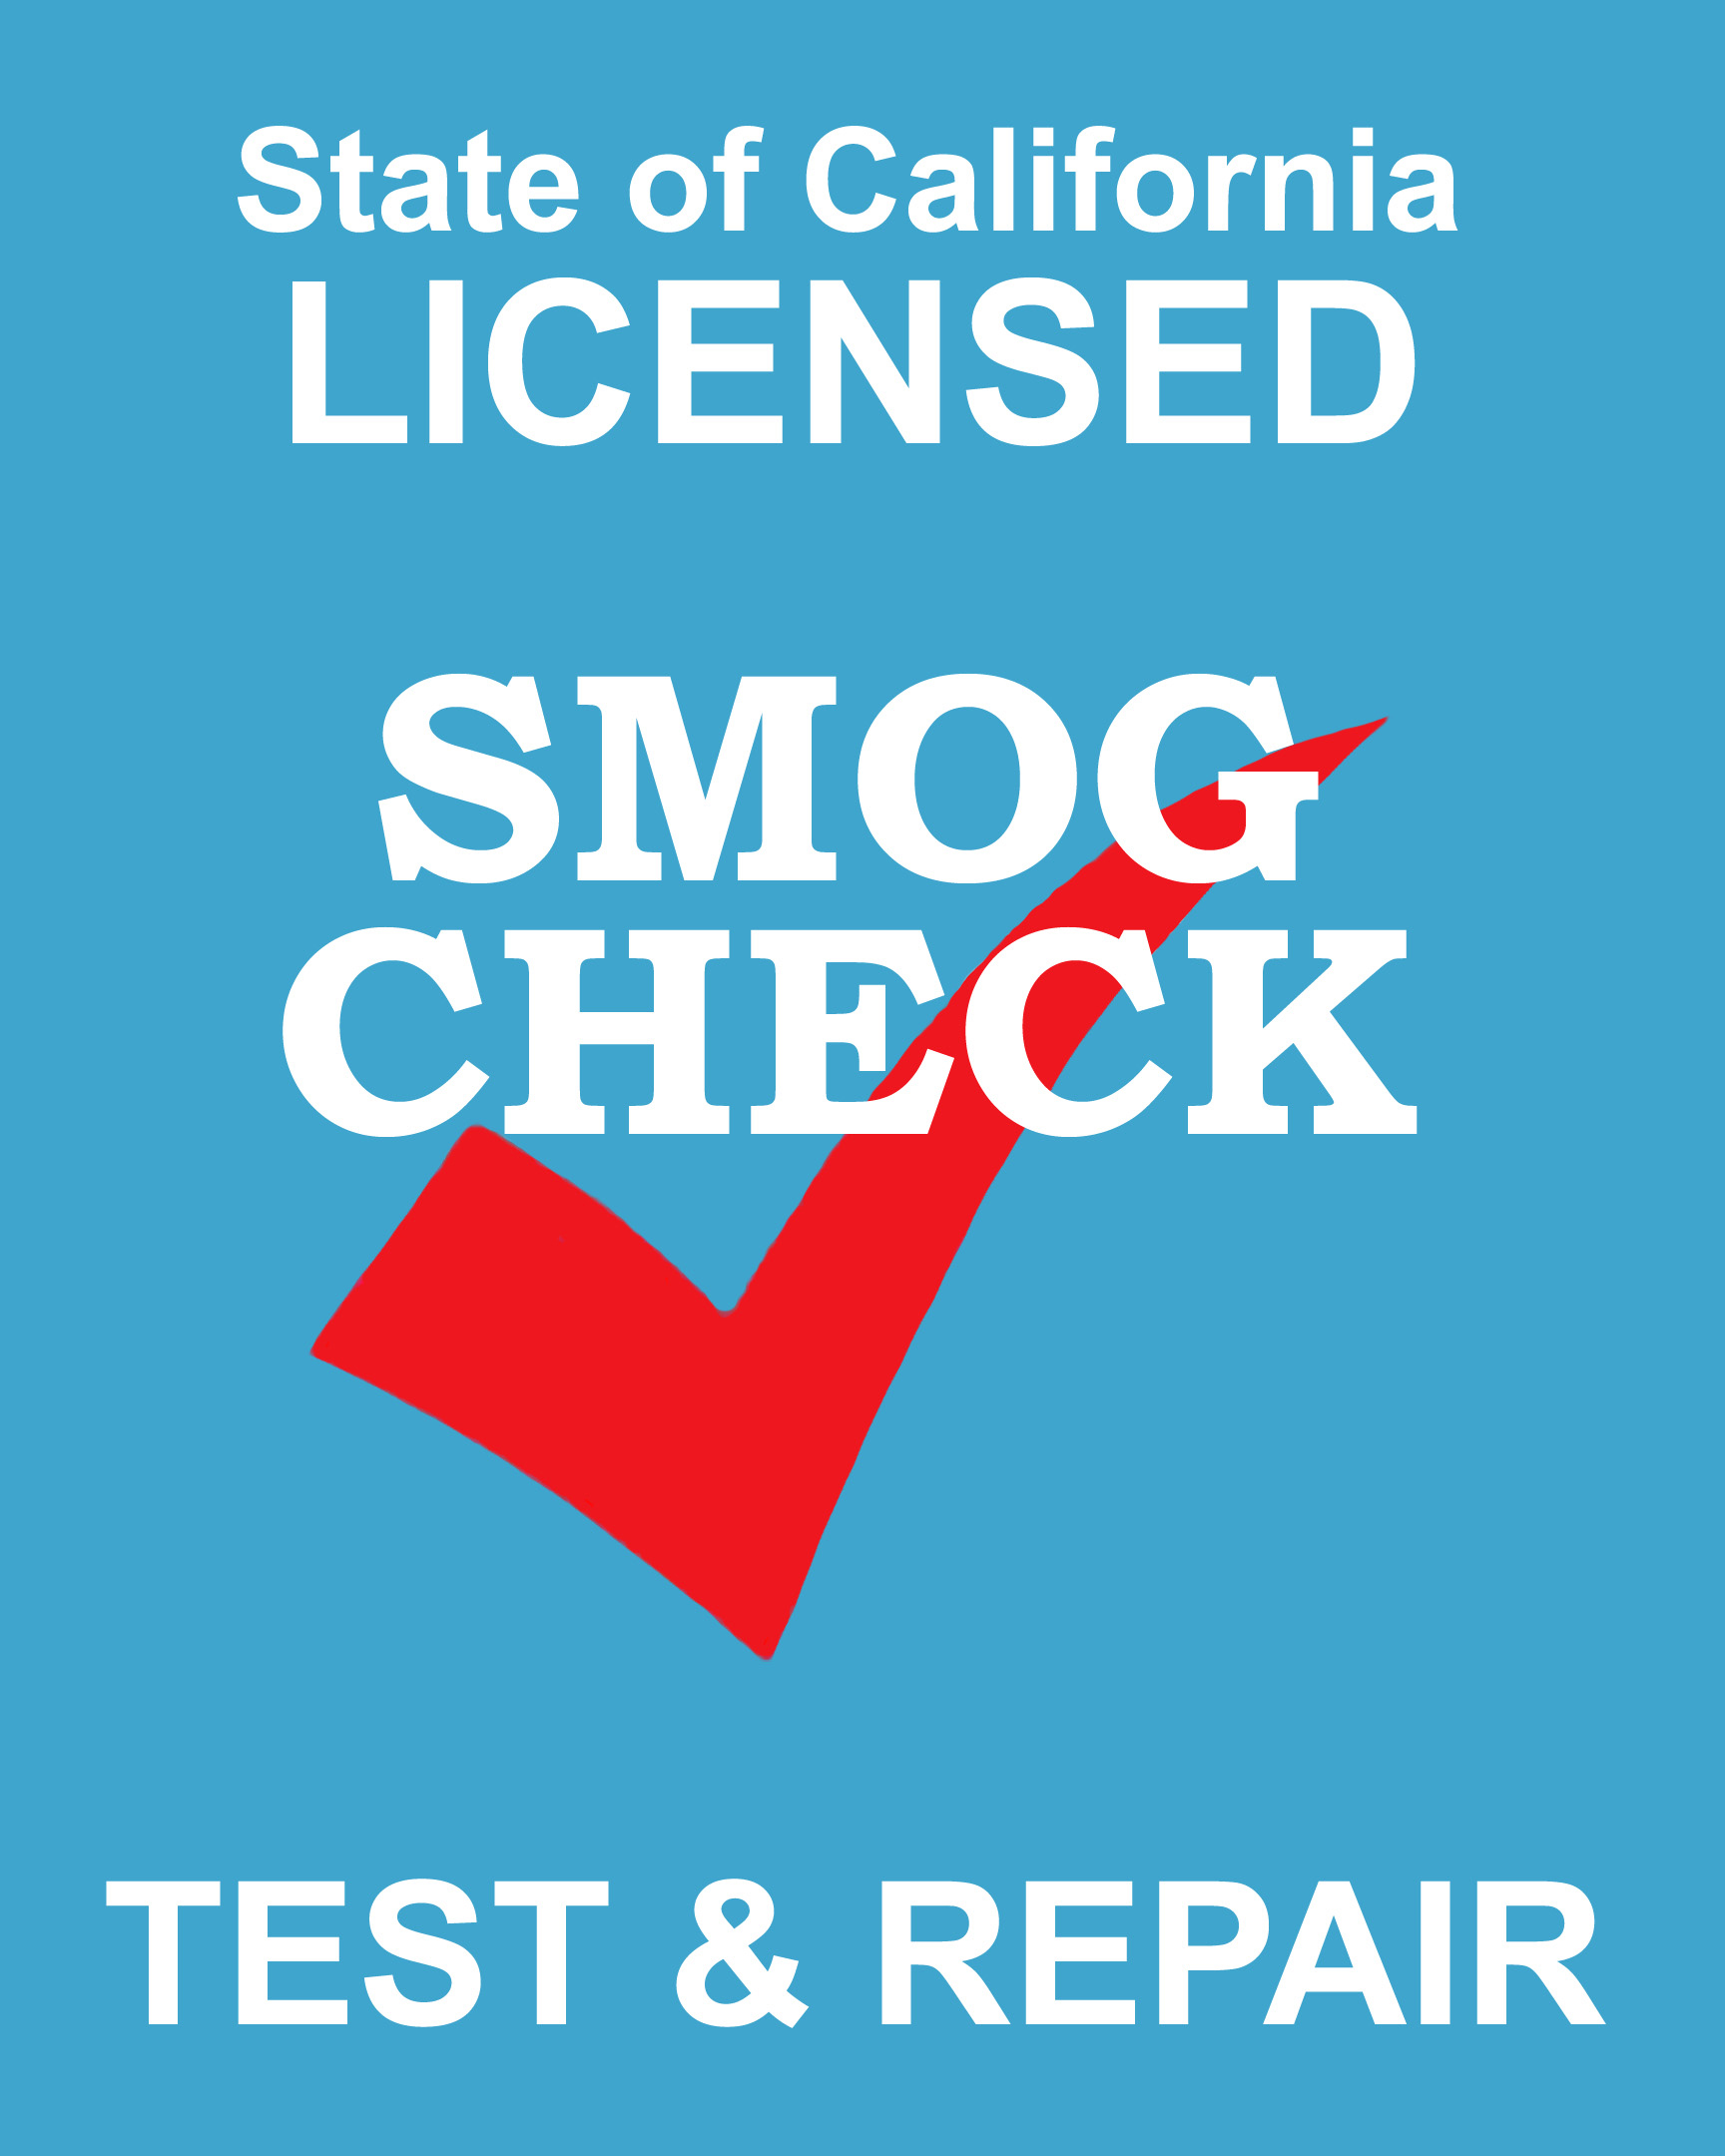 Licensed Smog, Green Phoenix Auto Repair, Salinas, CA, 93901